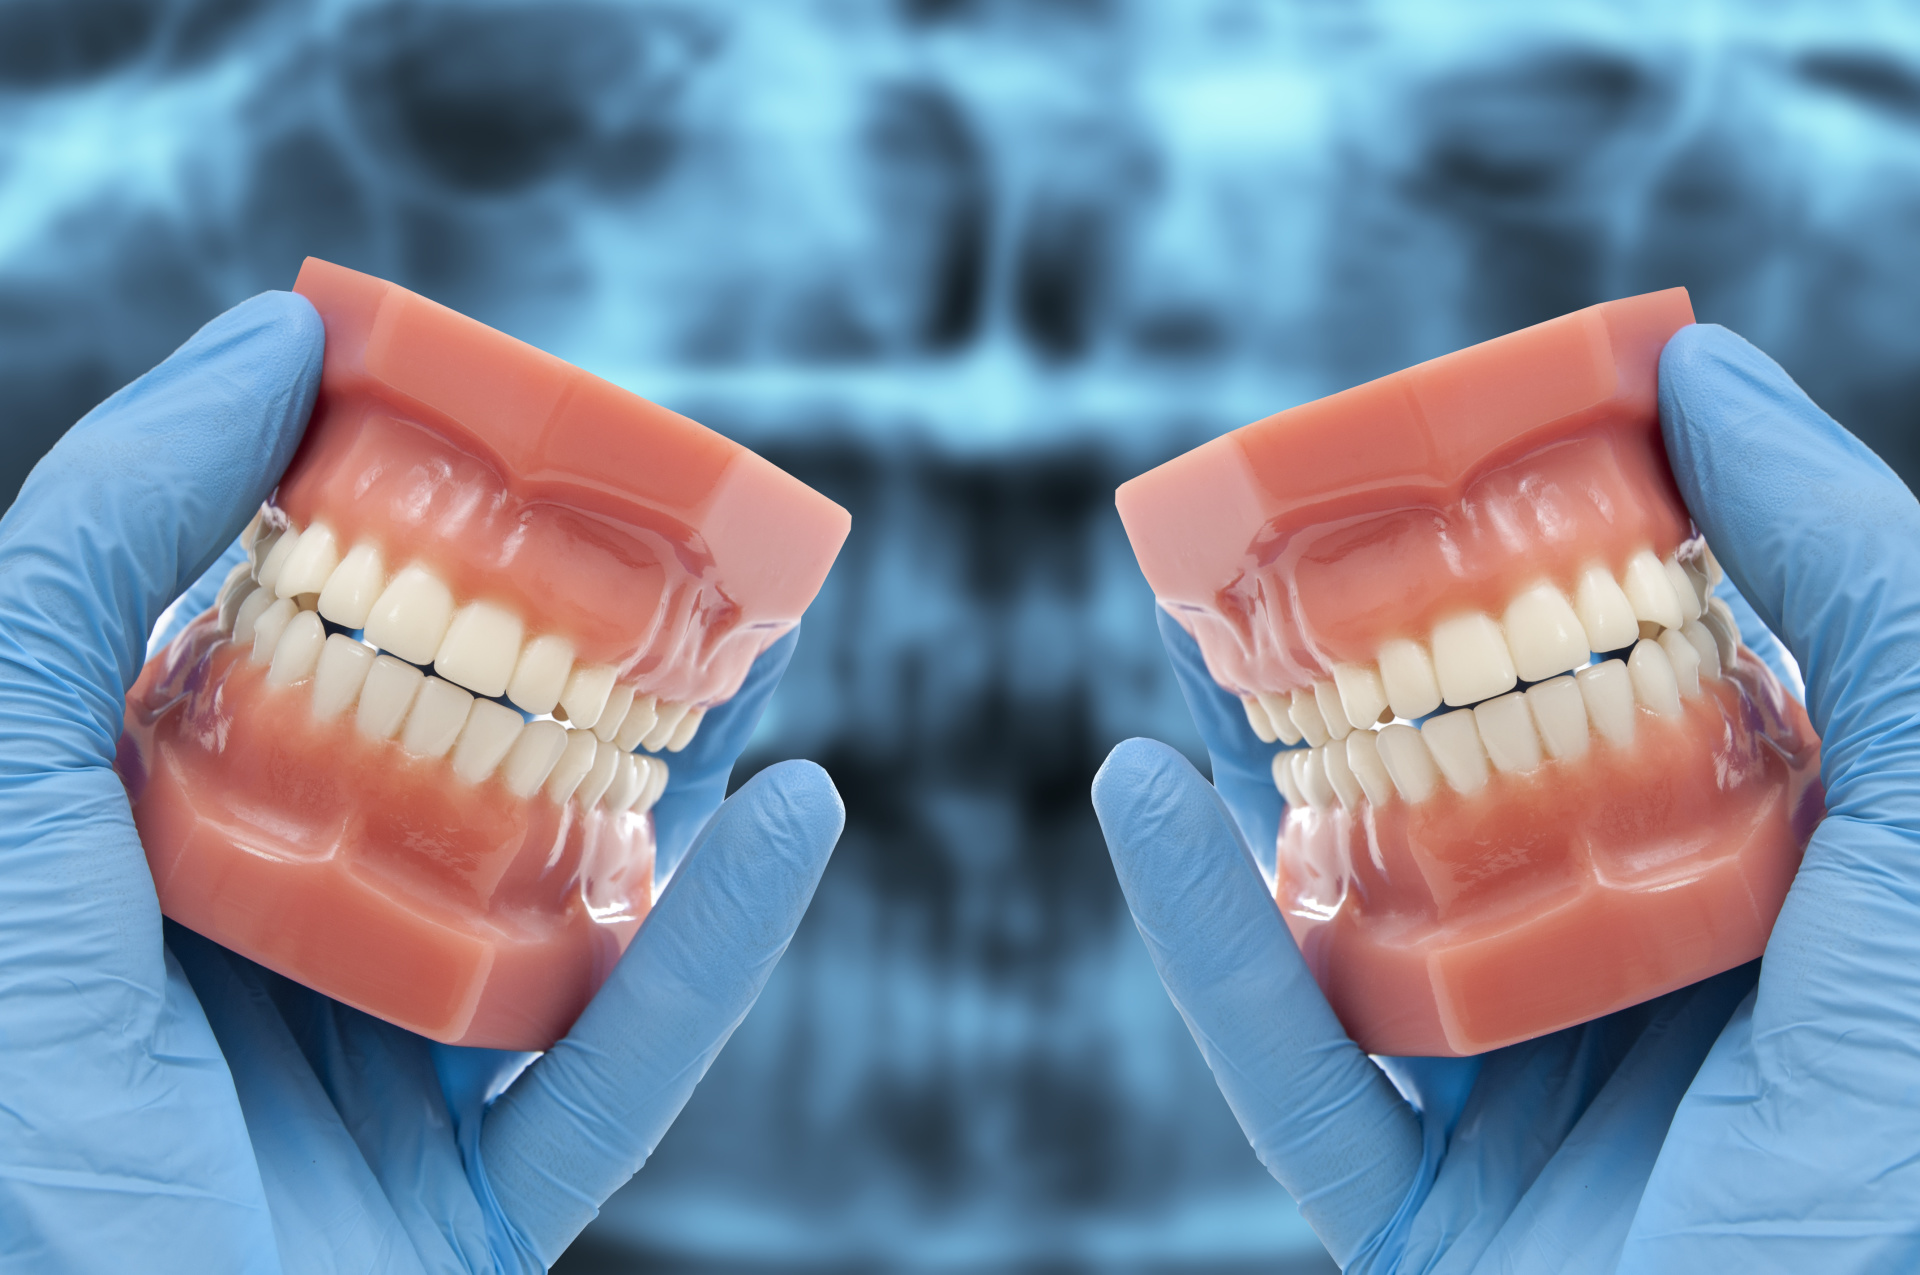 All You Need To Know About All on Four Dental Implants